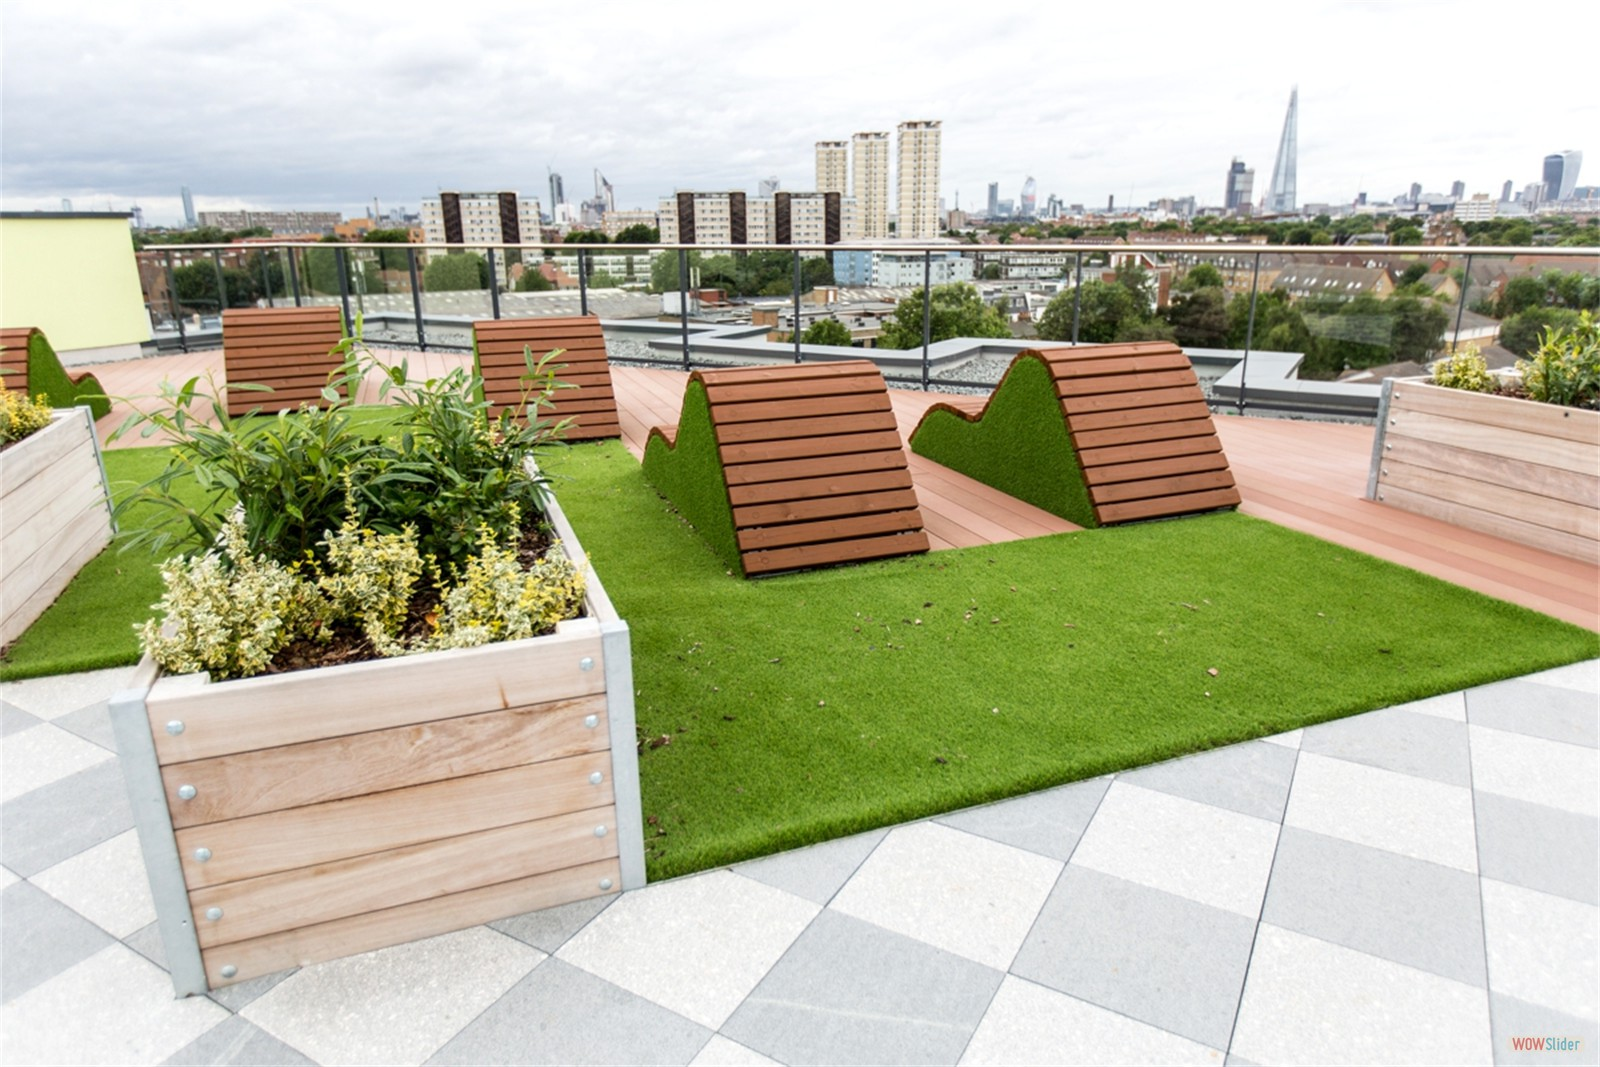 c12414 - Rotherhithe New Road, residential roof garden